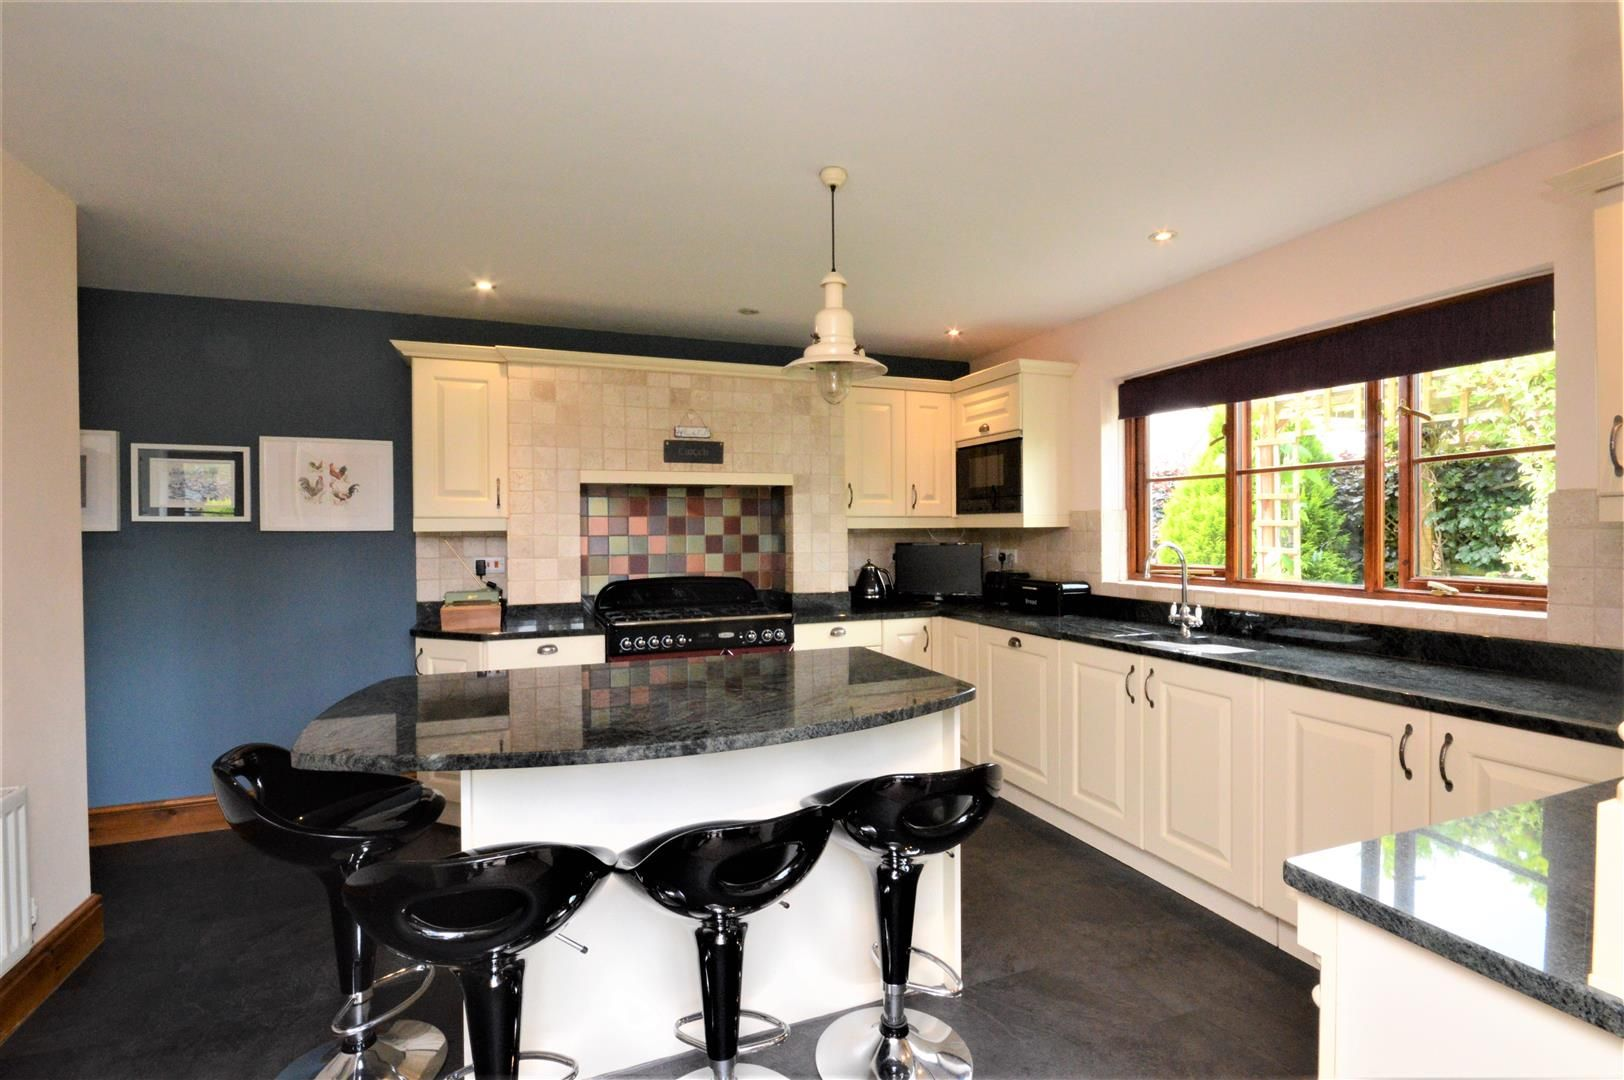 4 bed detached for sale in Eardisley  - Property Image 21